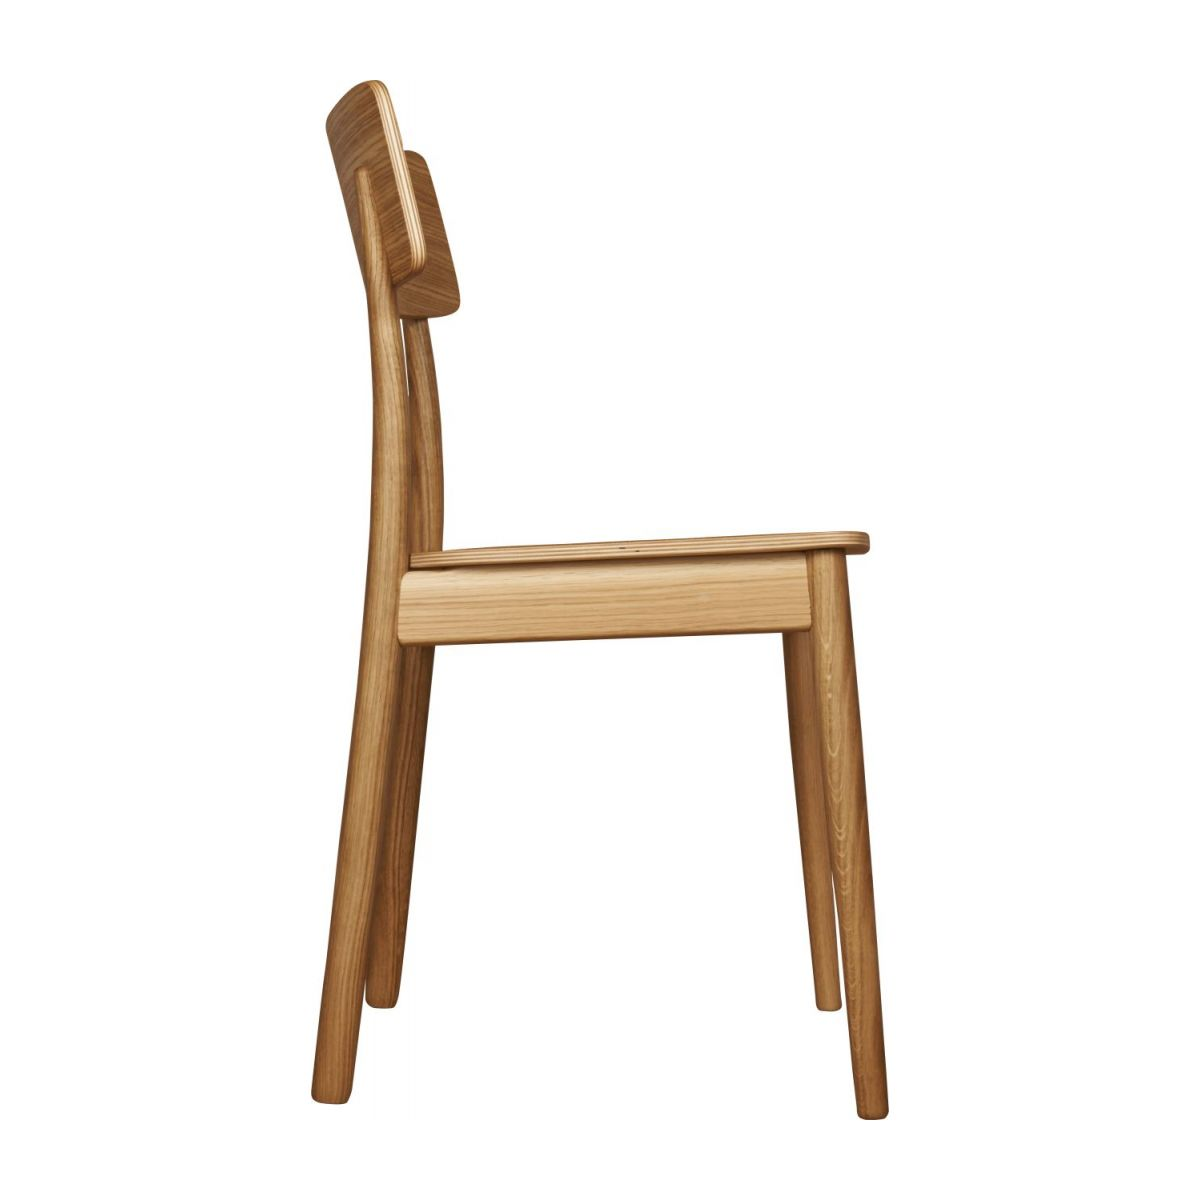 Oak chair n°6